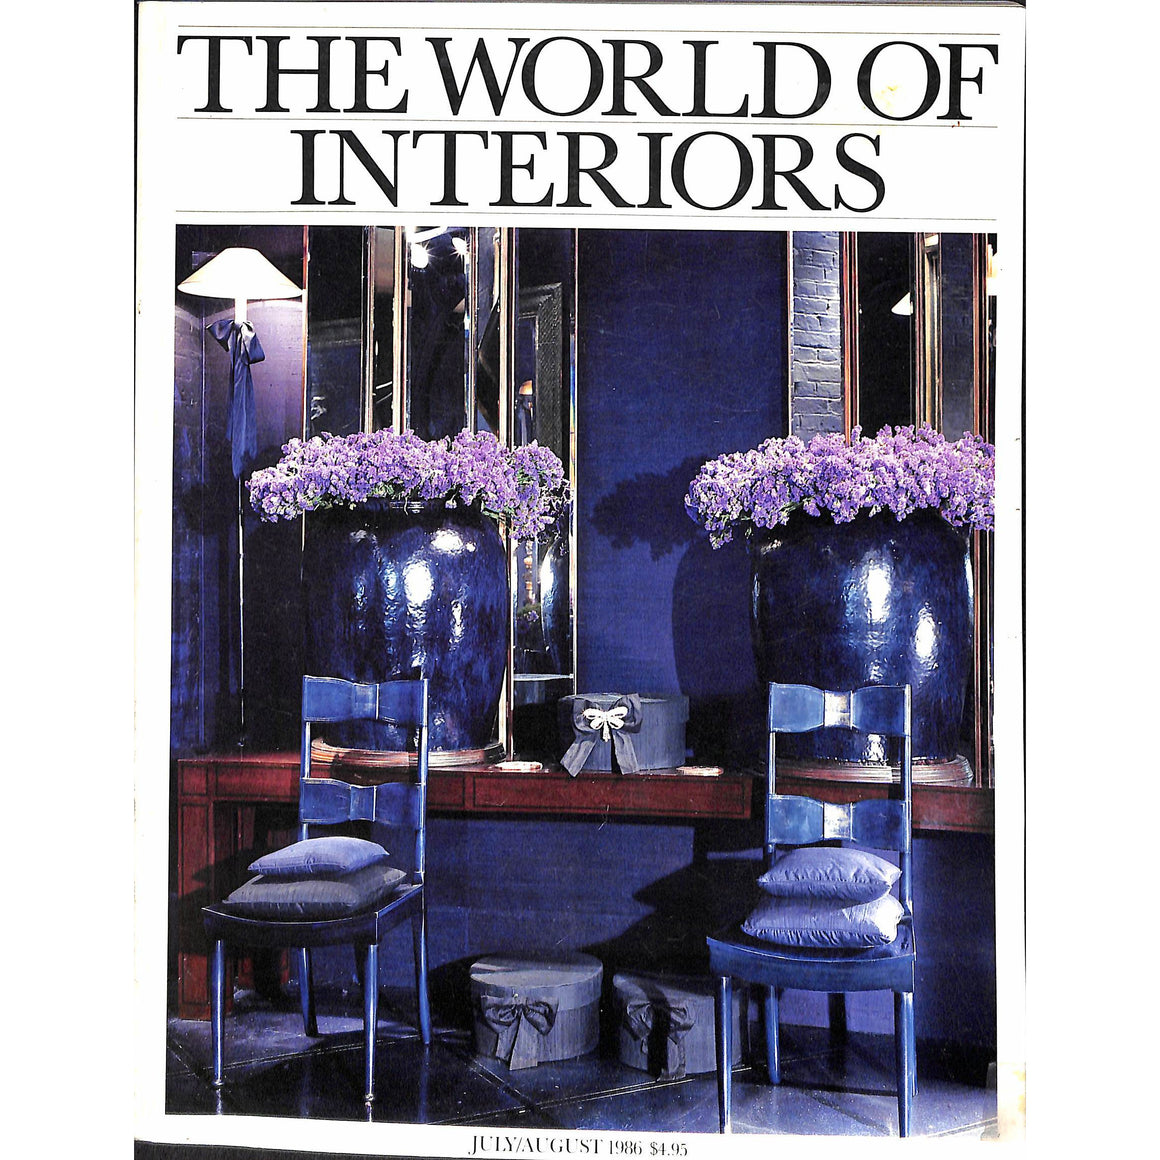 The World of Interiors July/August 1986